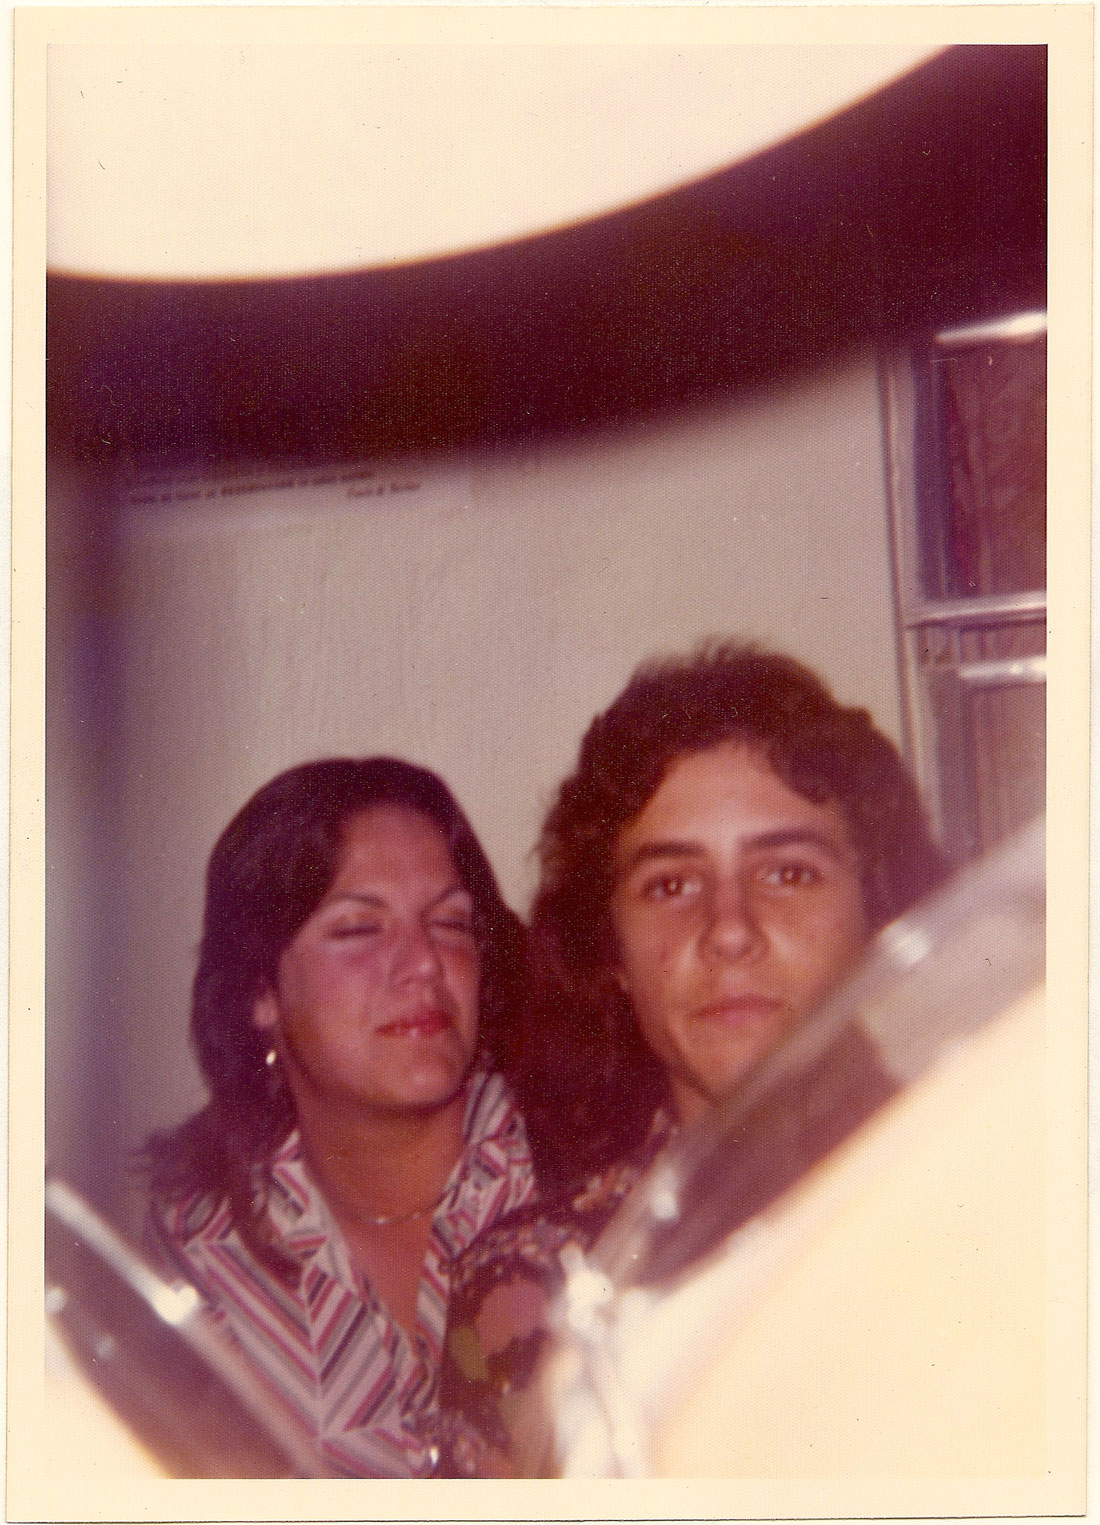 Carlos Segura (and friend) at The Big-5 Club on March 30, 1975